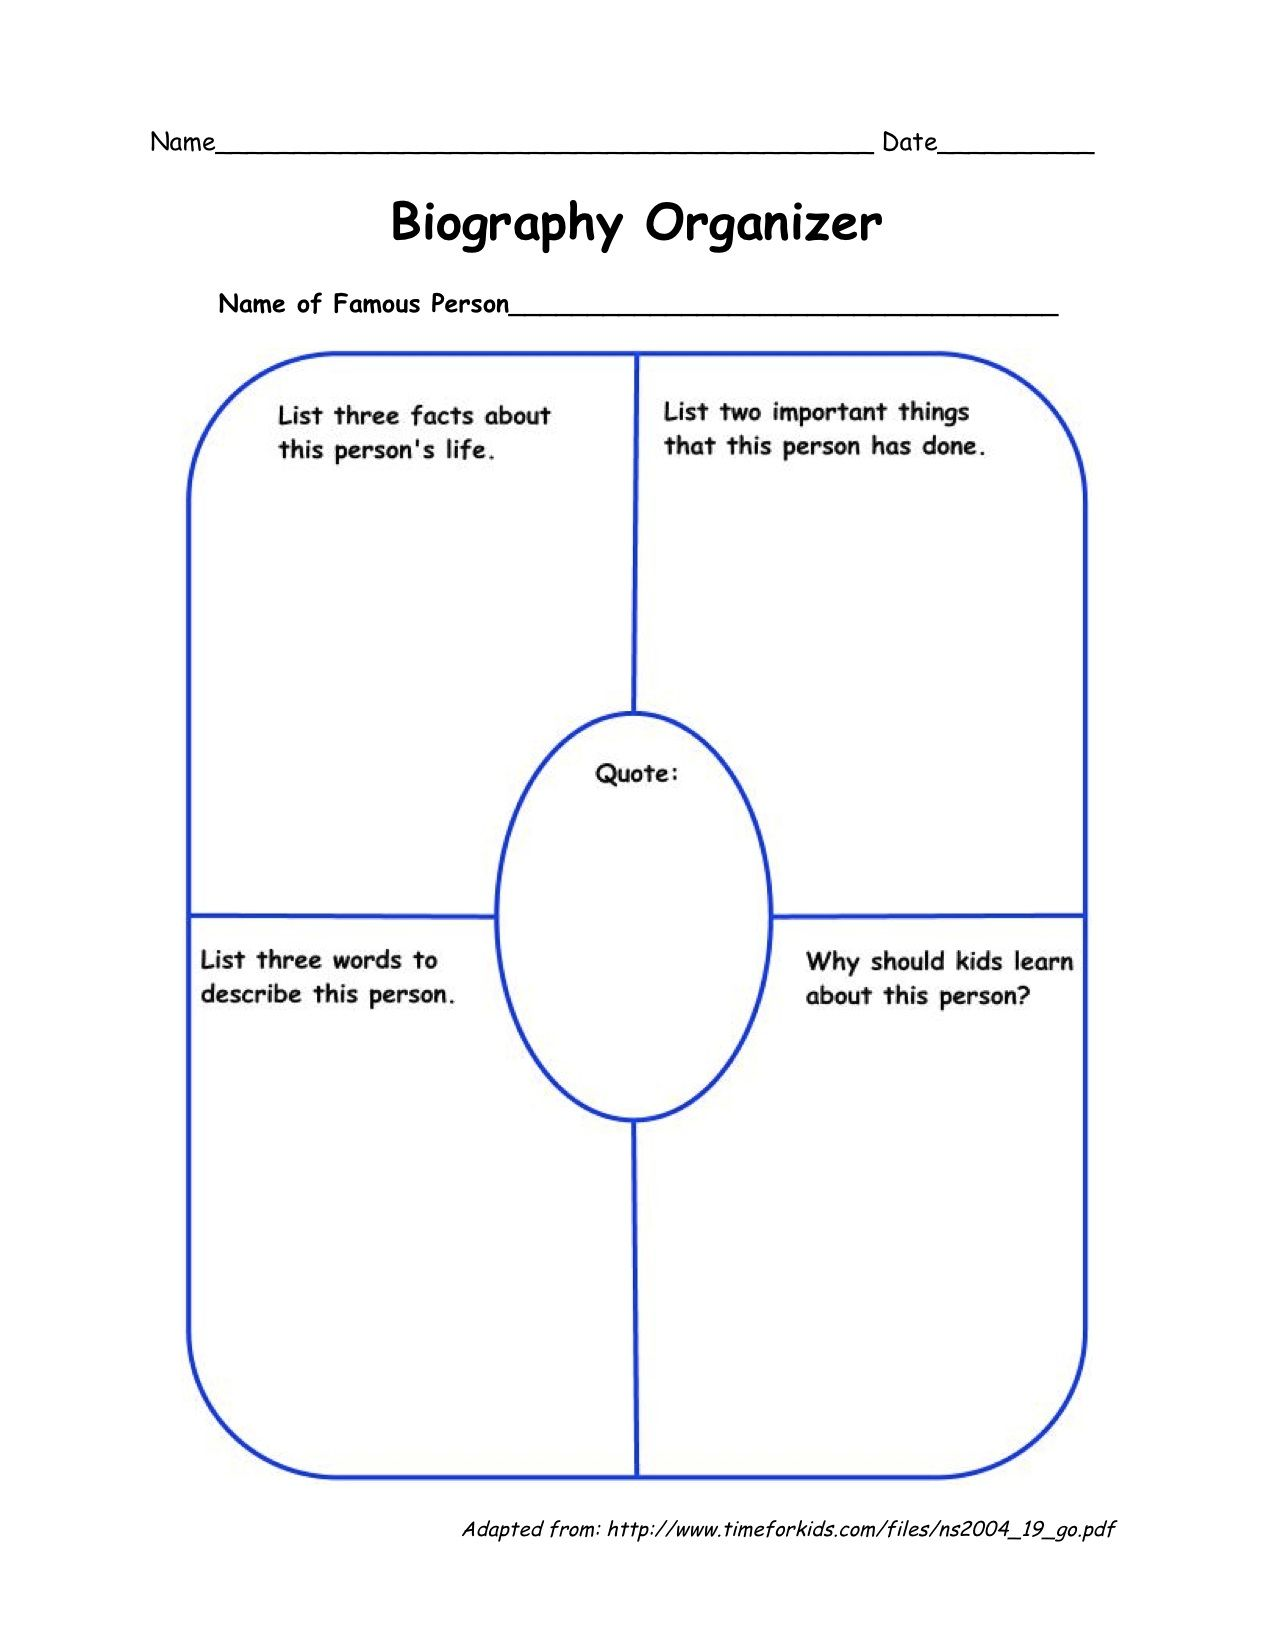 biography organizer language arts trees research families